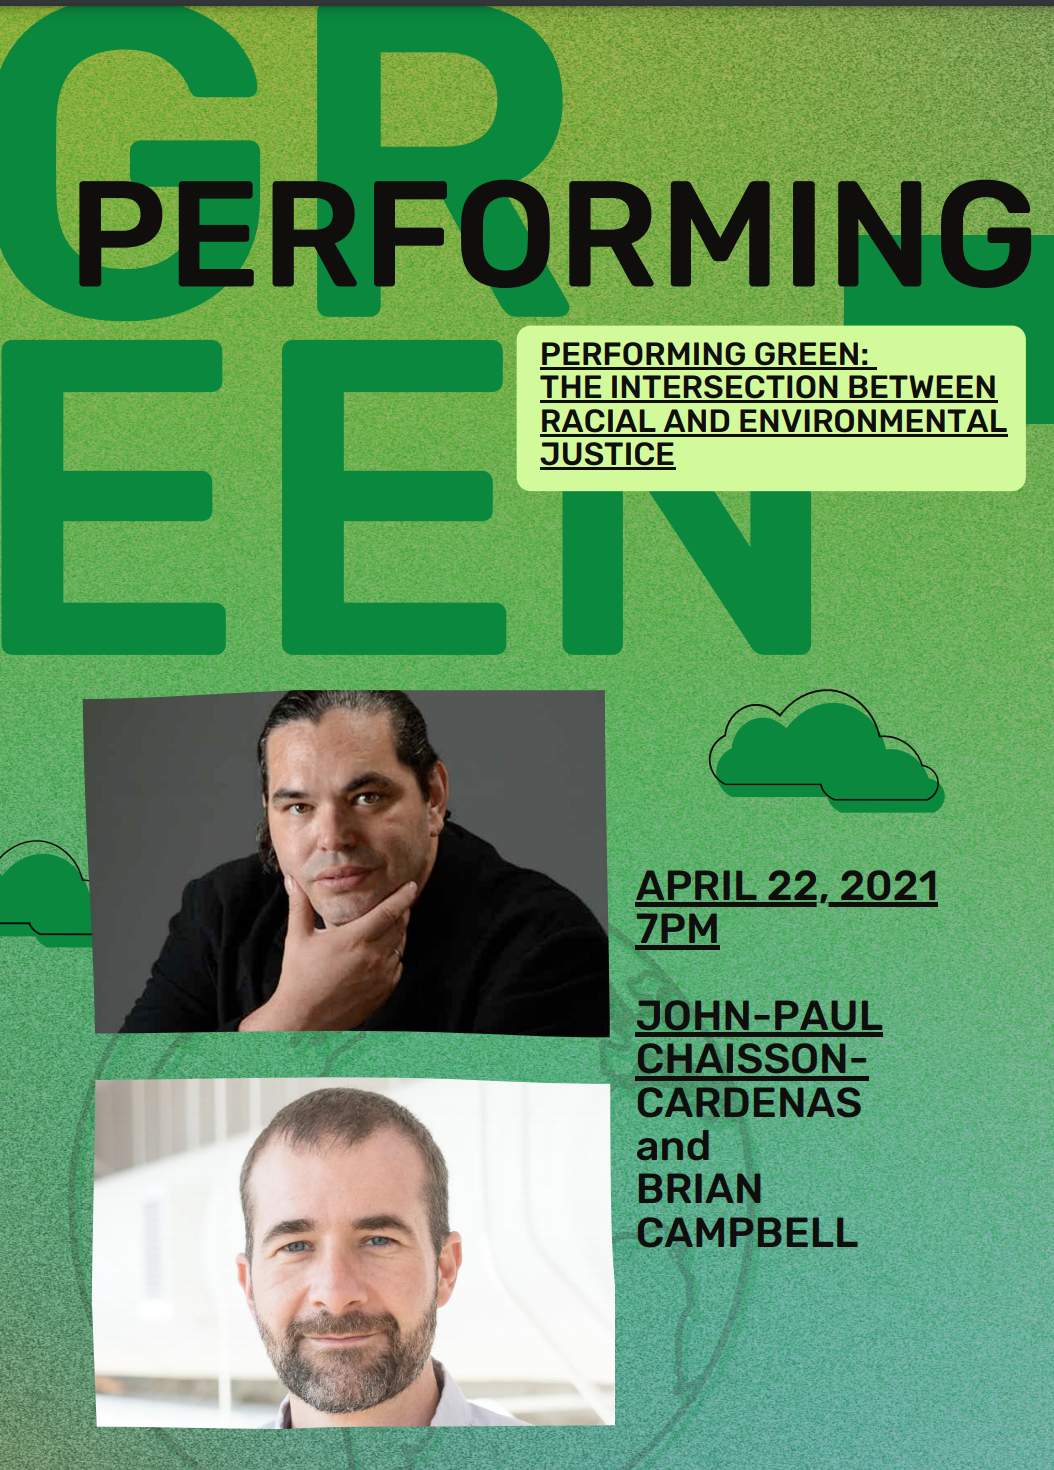 Performing Green: The Intersection Between Racial and Environmental Justice Poster